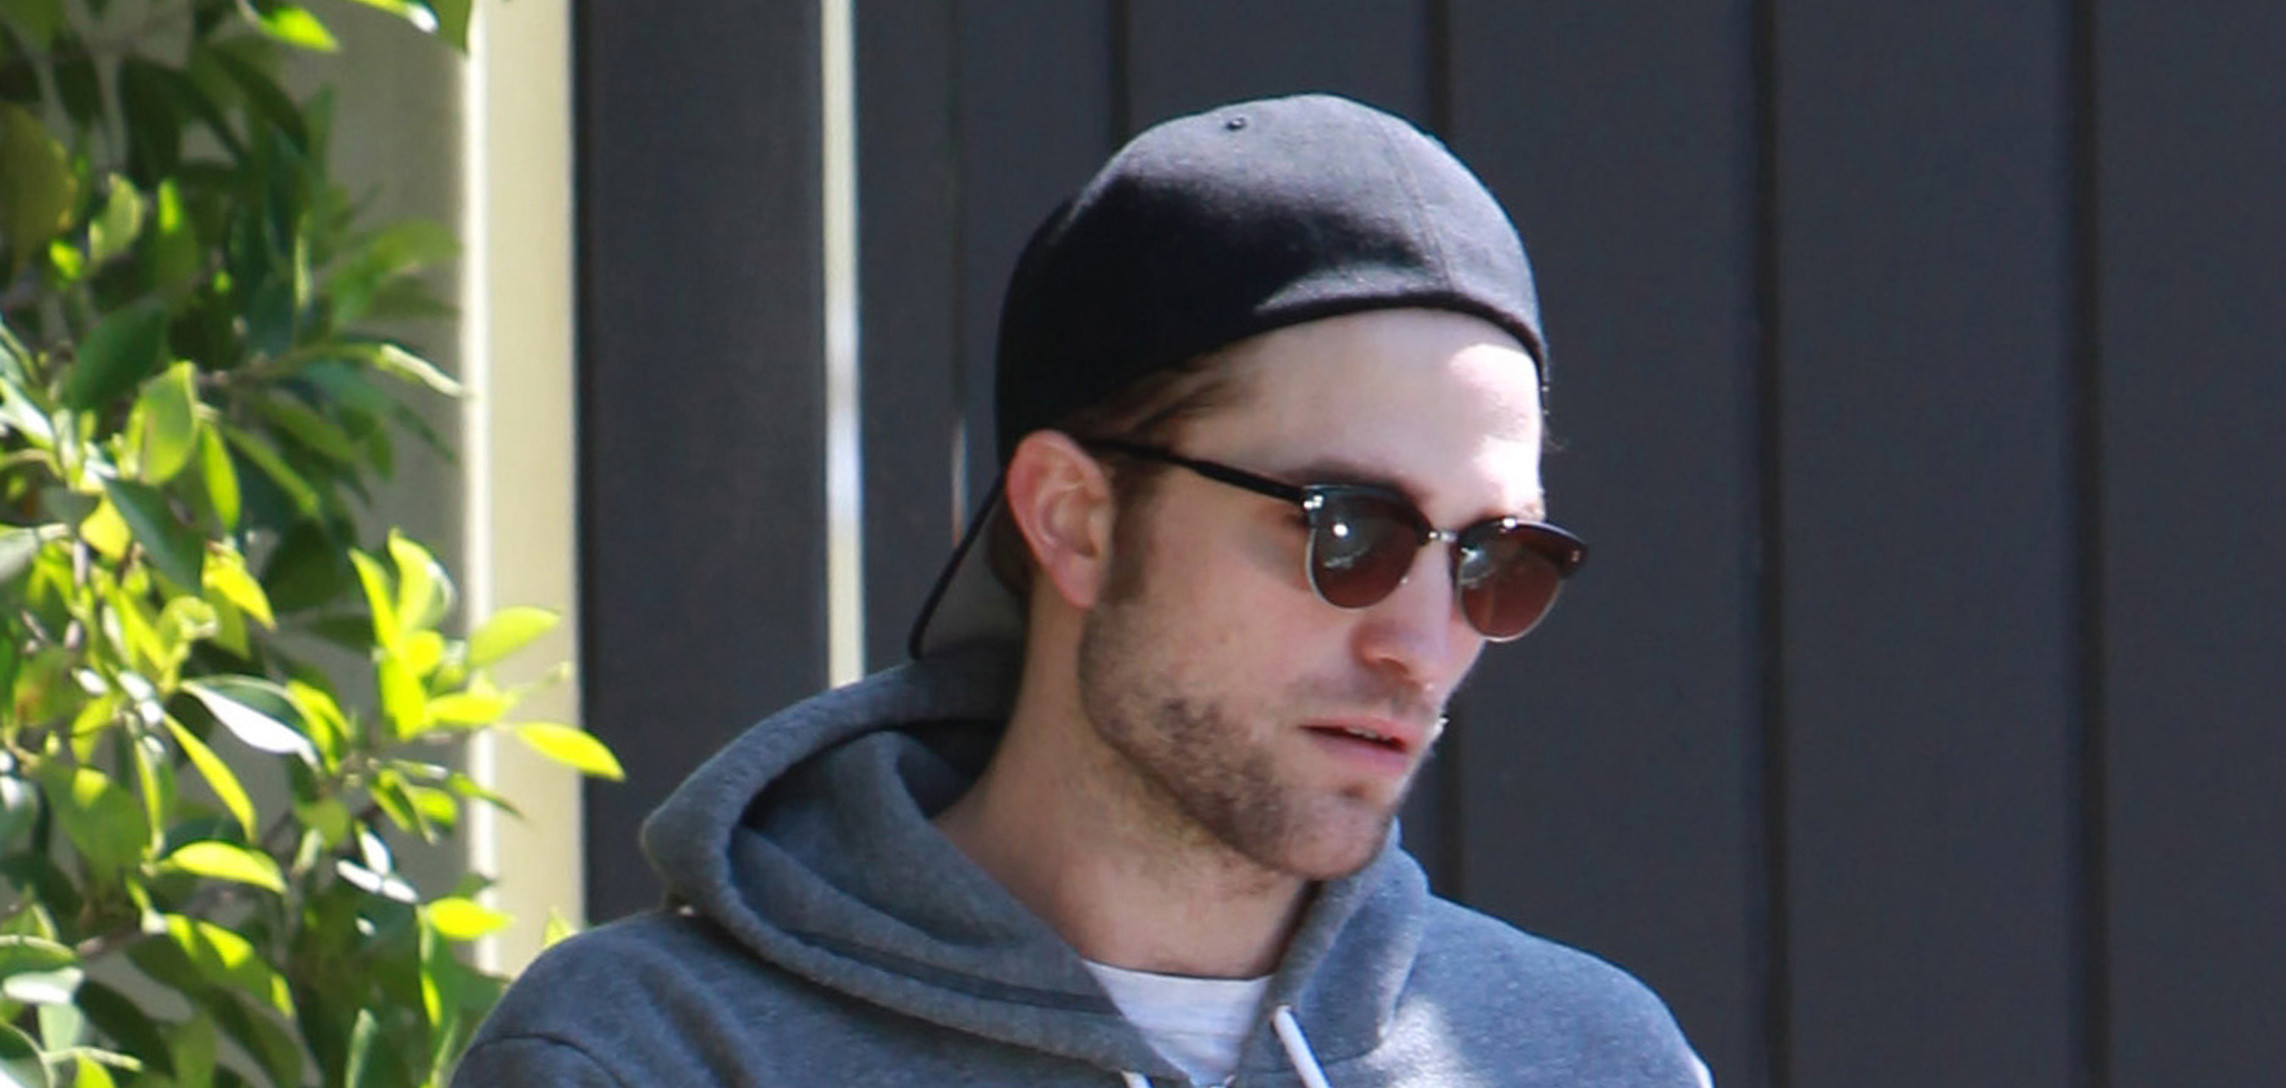 Robert Pattinson deixando academia em Los Angeles dia 06/04